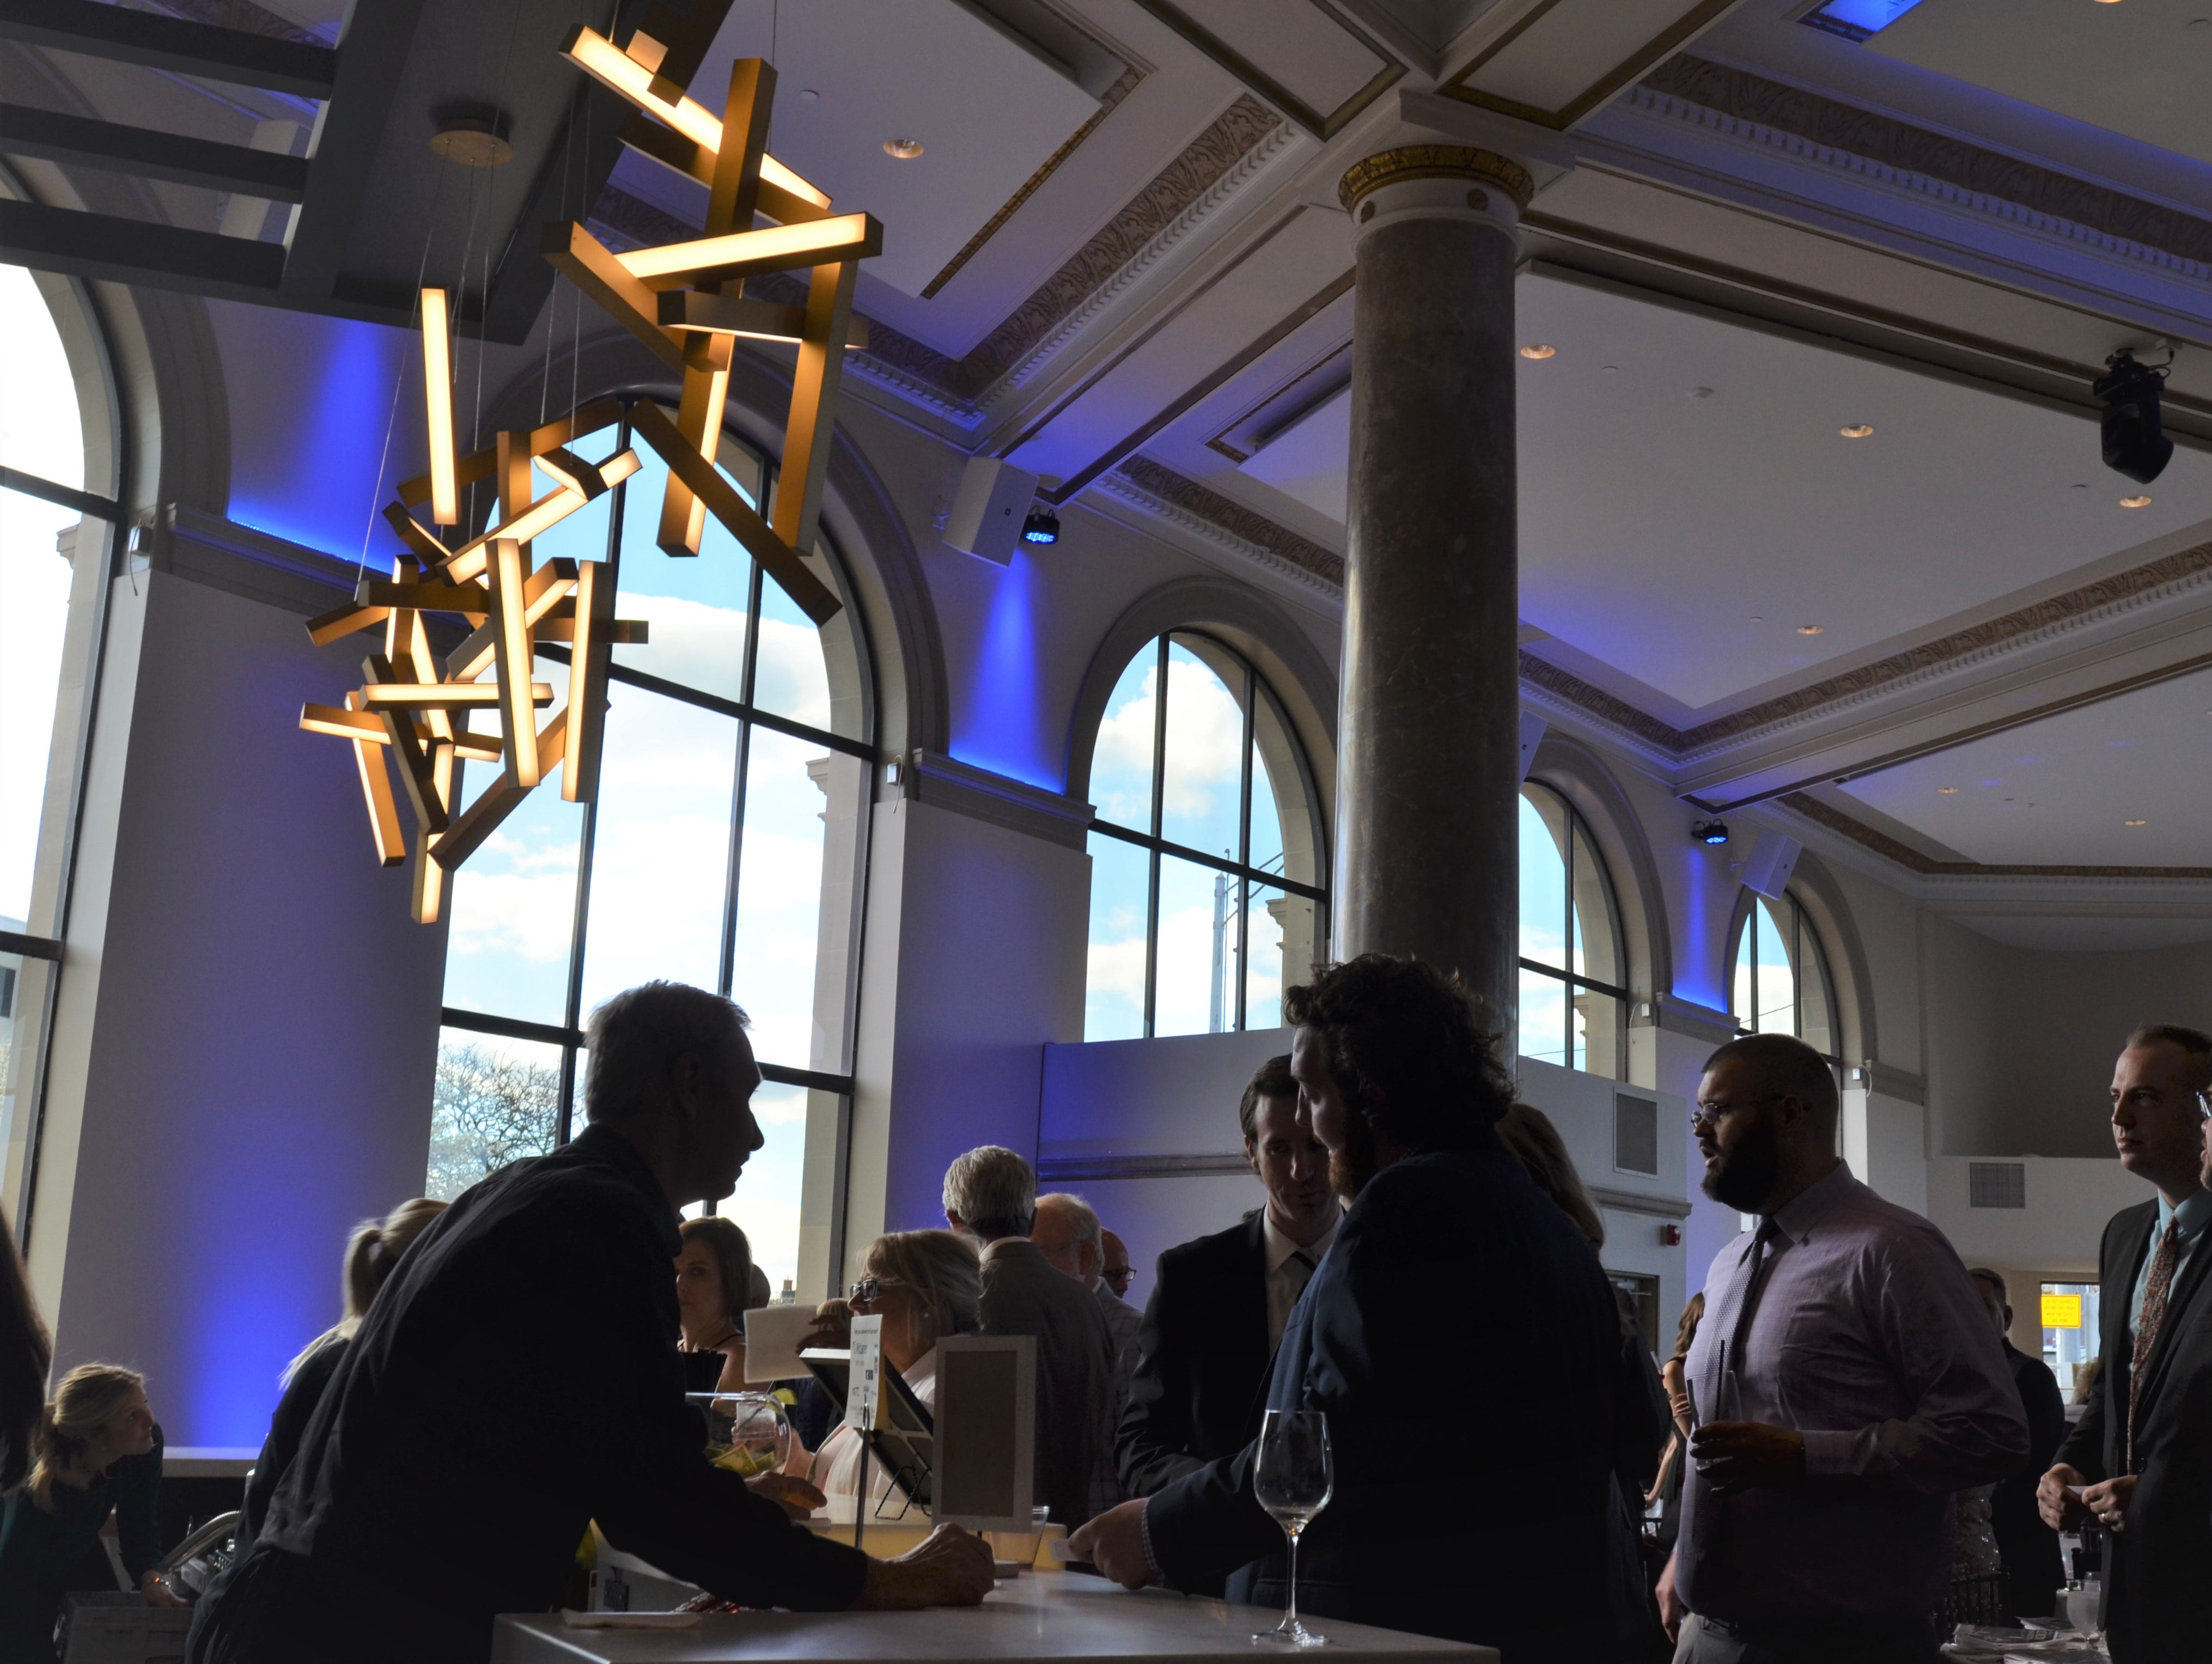 Attendees of the Blue Water Area Chamber of Commerce's Eddy Awards line of for drinks at the bar of the newly-renovated ballroom of the CityFlats Hotel on Friday, May 10, 2019.